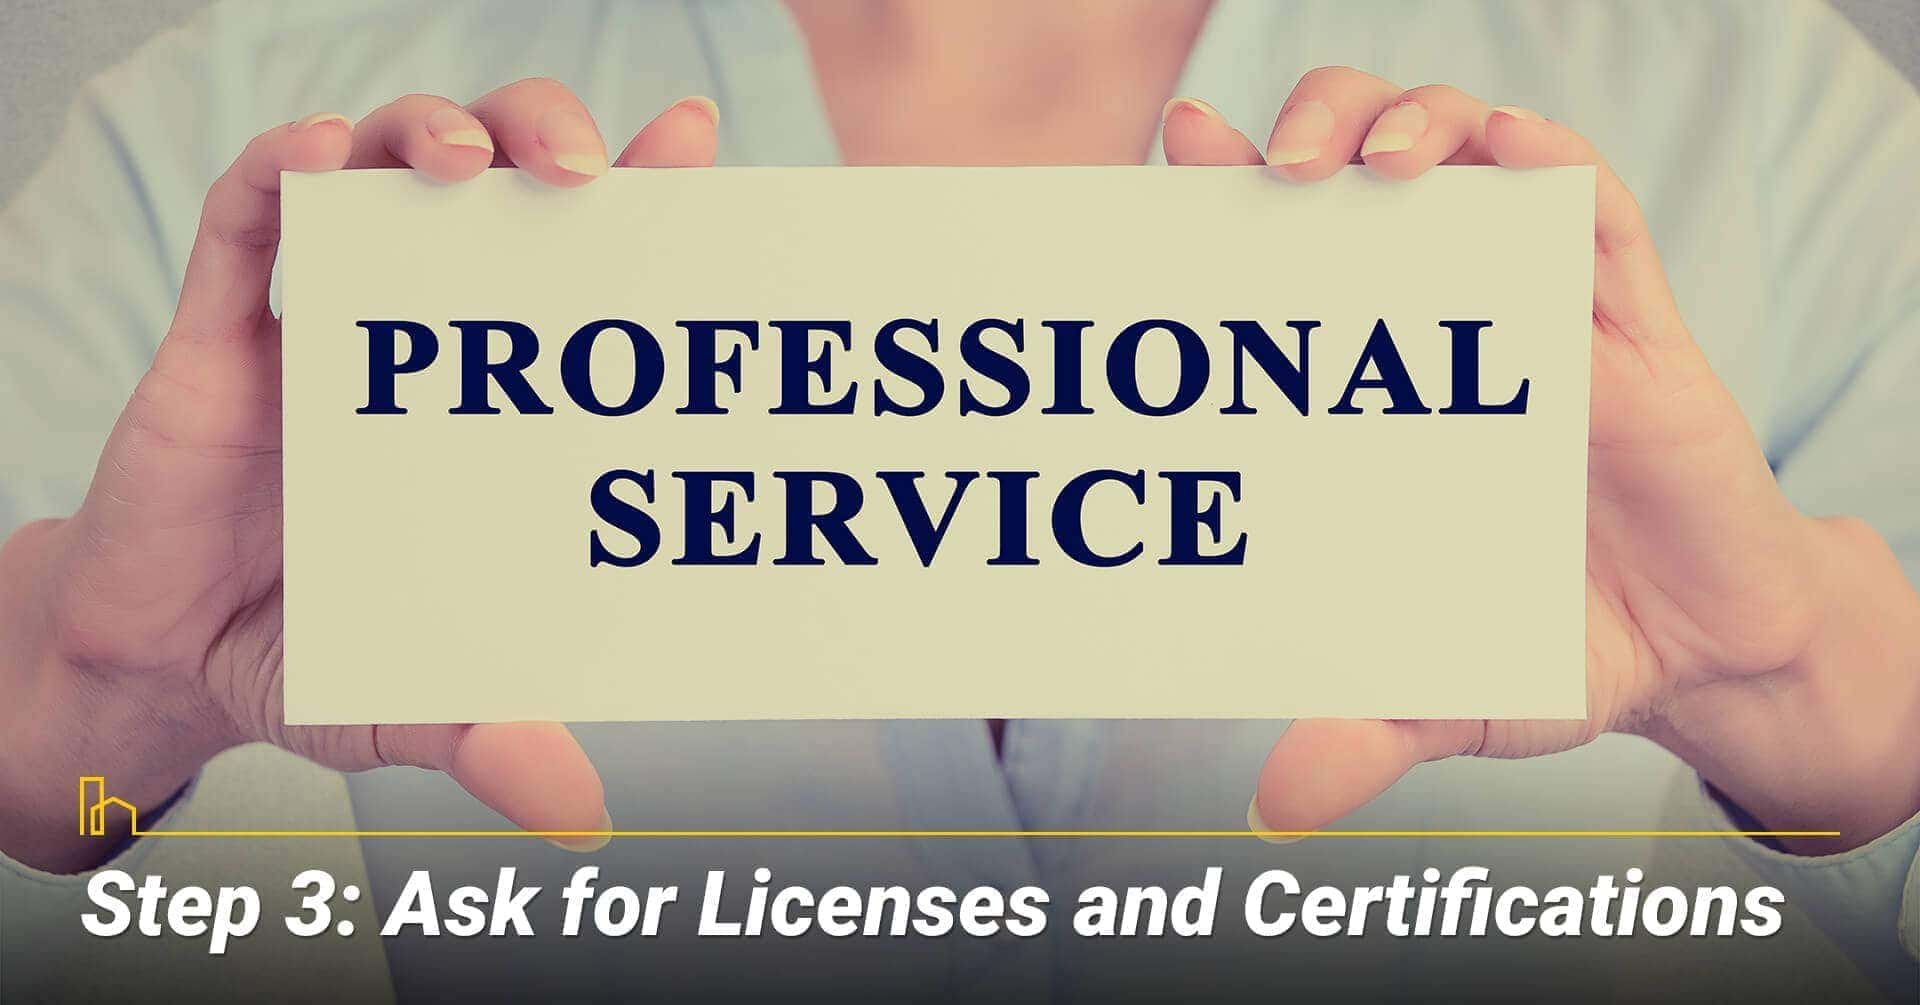 Step 3: Ask for Licenses and Certifications